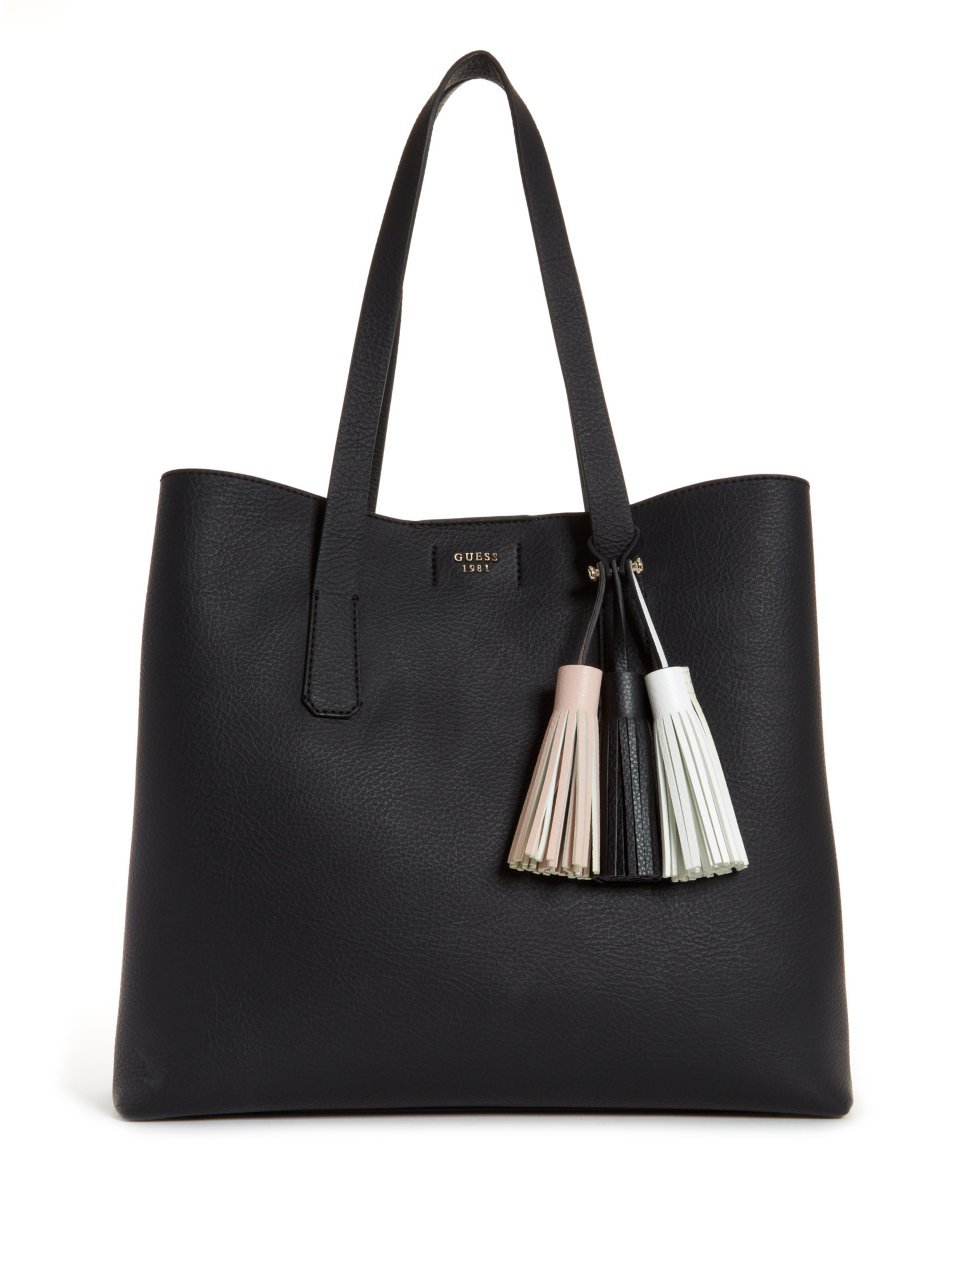 GUESS Trudy Tassel Tote